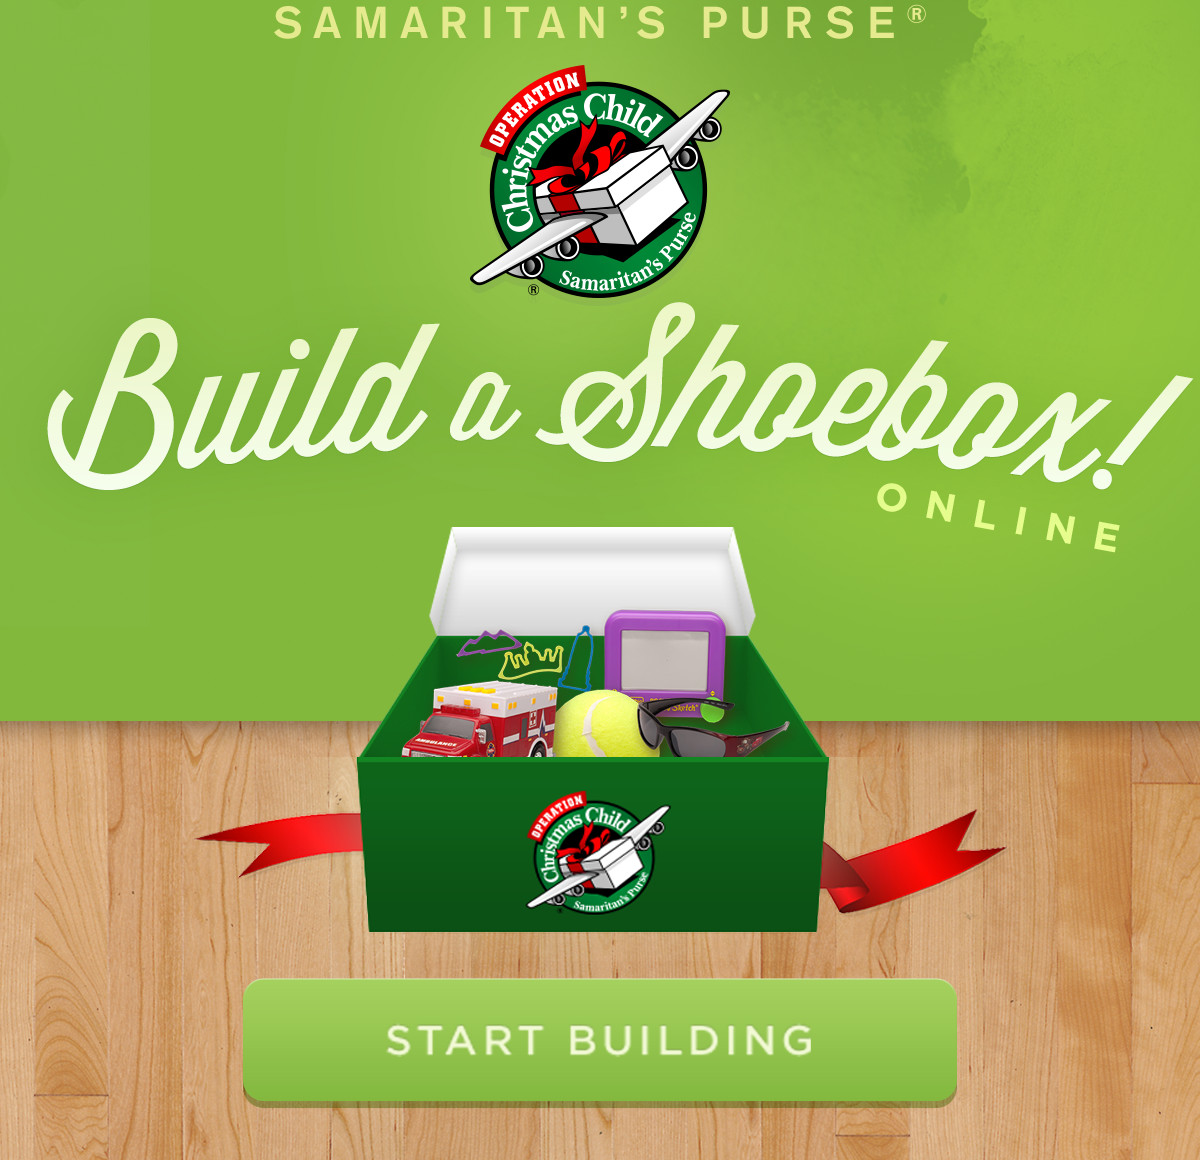 build your shoebox online